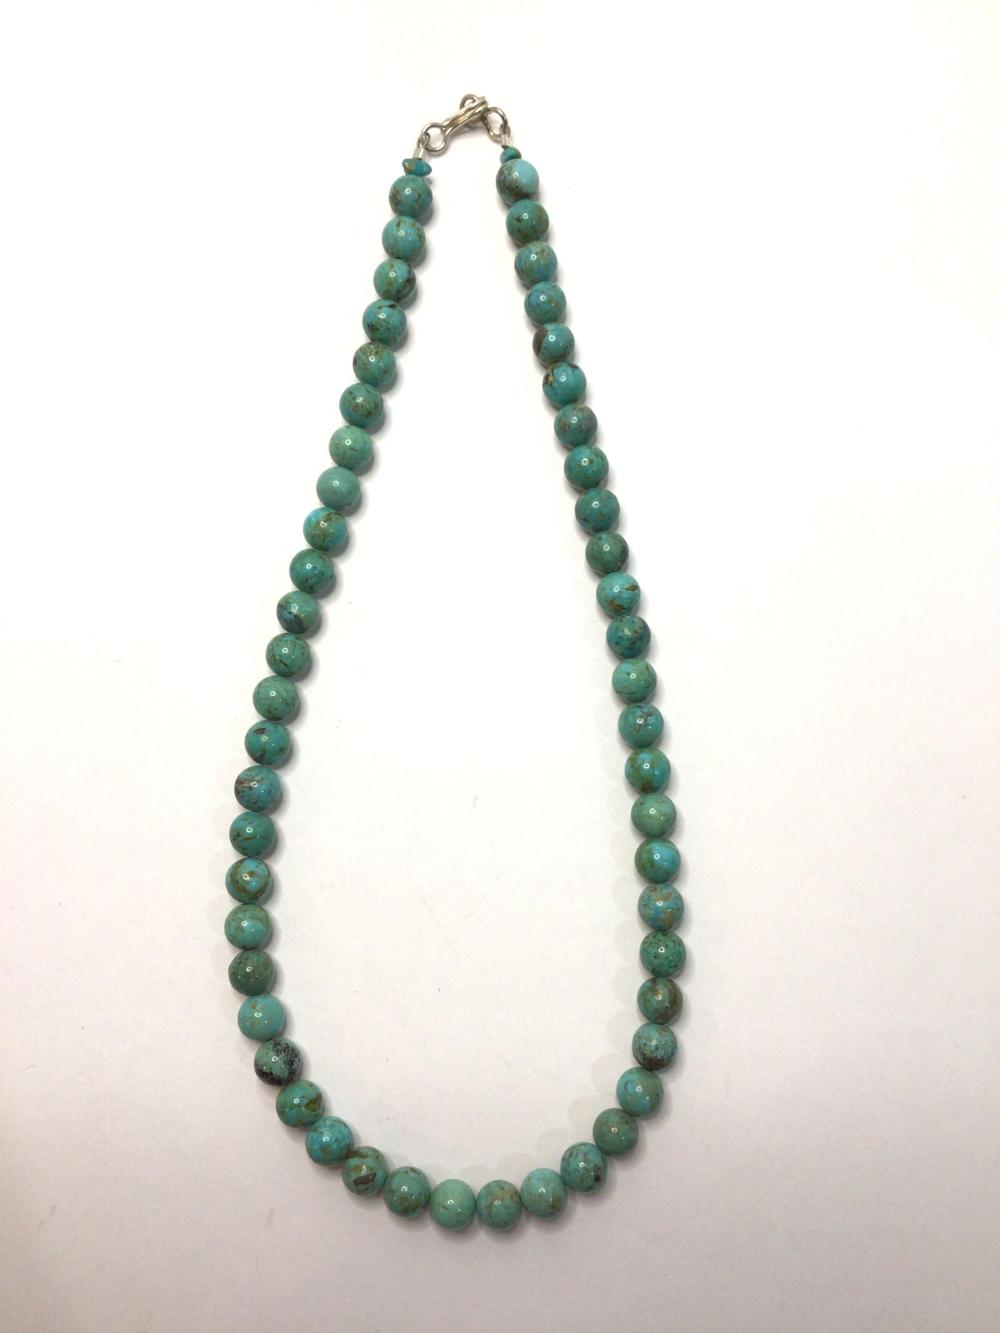 G: Handmade Turquoise Beaded Necklace